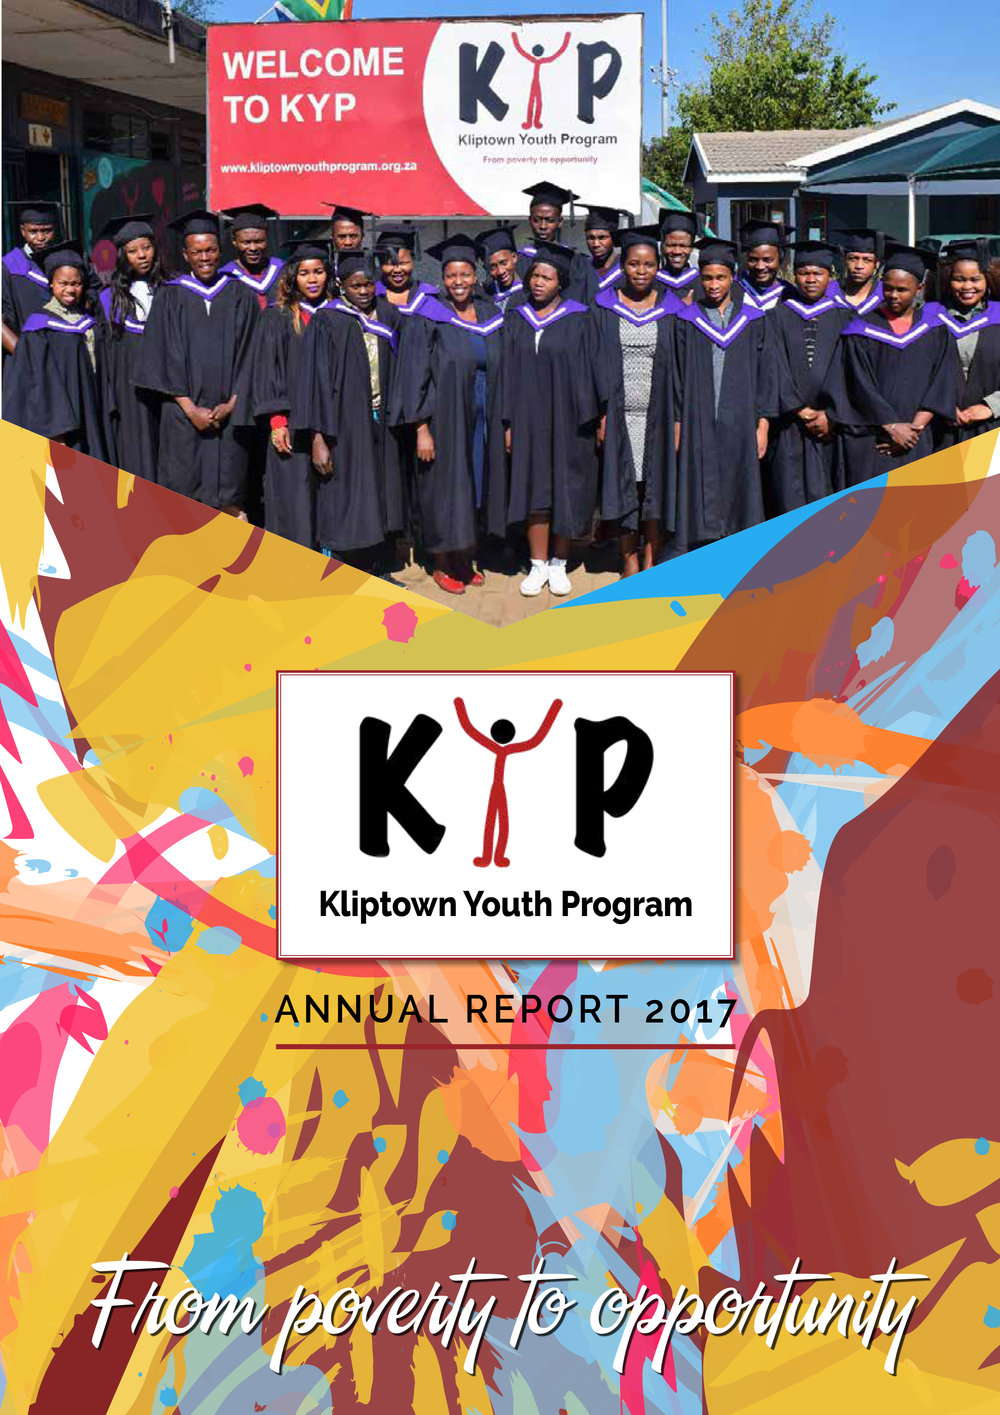 KYP Annual Report 2017.jpg